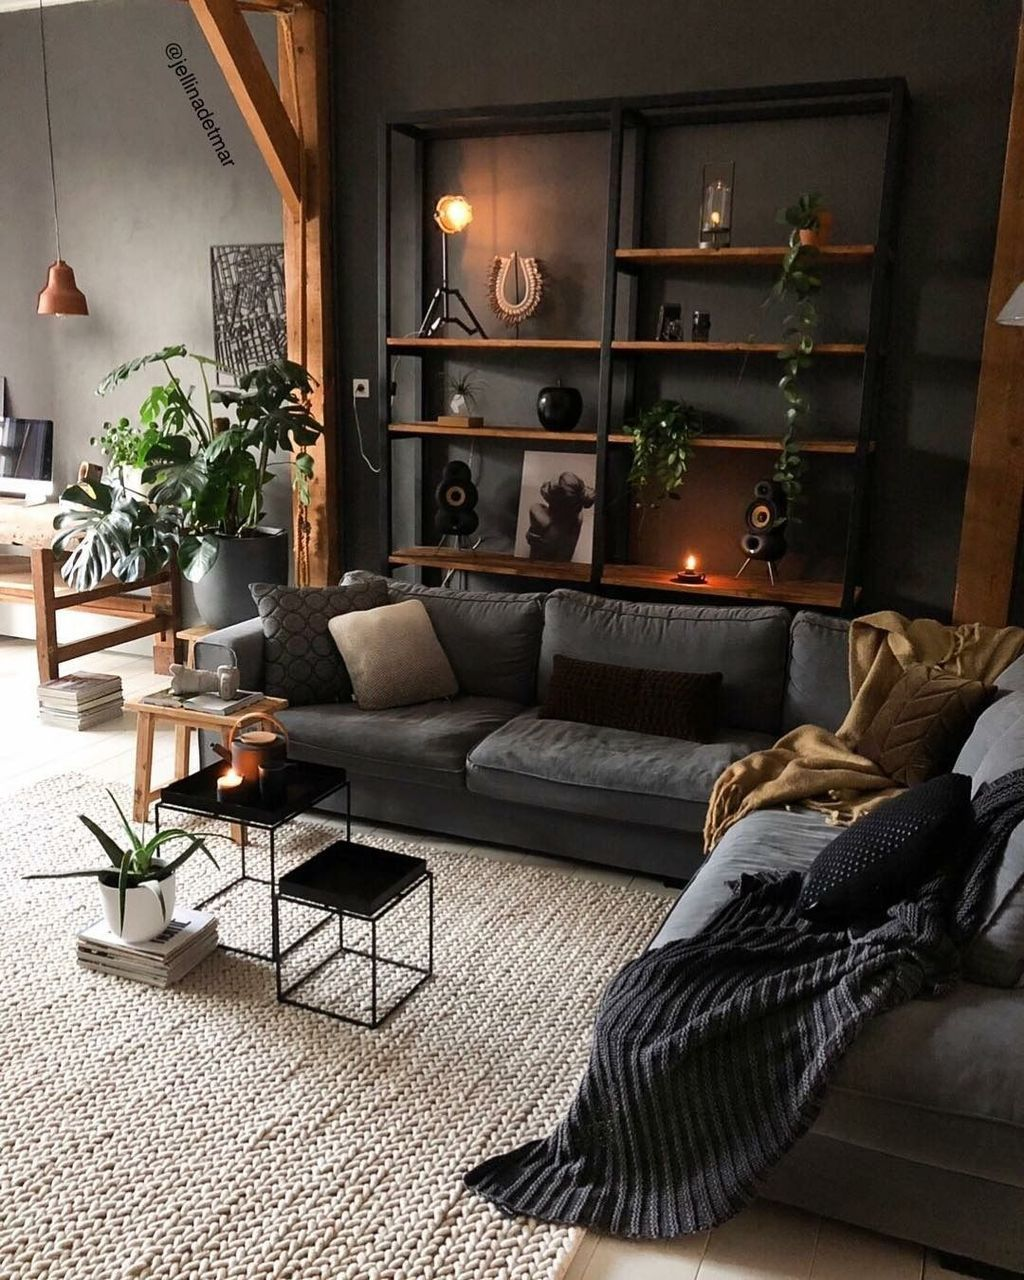 39 Modern Apartment Design Ideas With Industrial Style To Try Asap Dark Home Decor Interior Design Apartment Small Small Apartment Interior